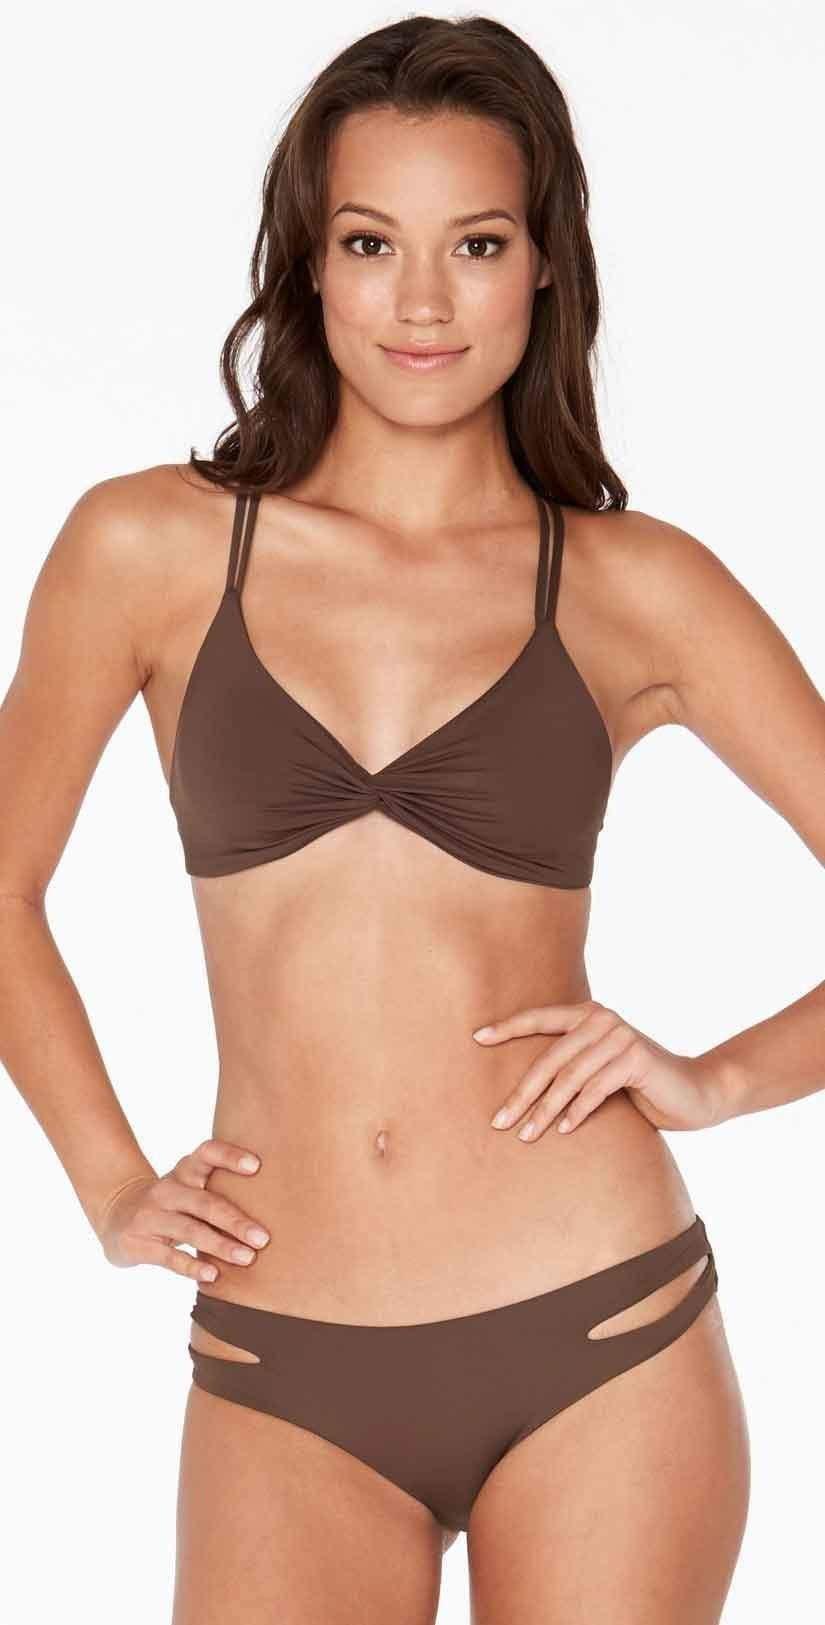 L Space Estella Full Cut Bottom in Chocolate  SS32F14-CHO: